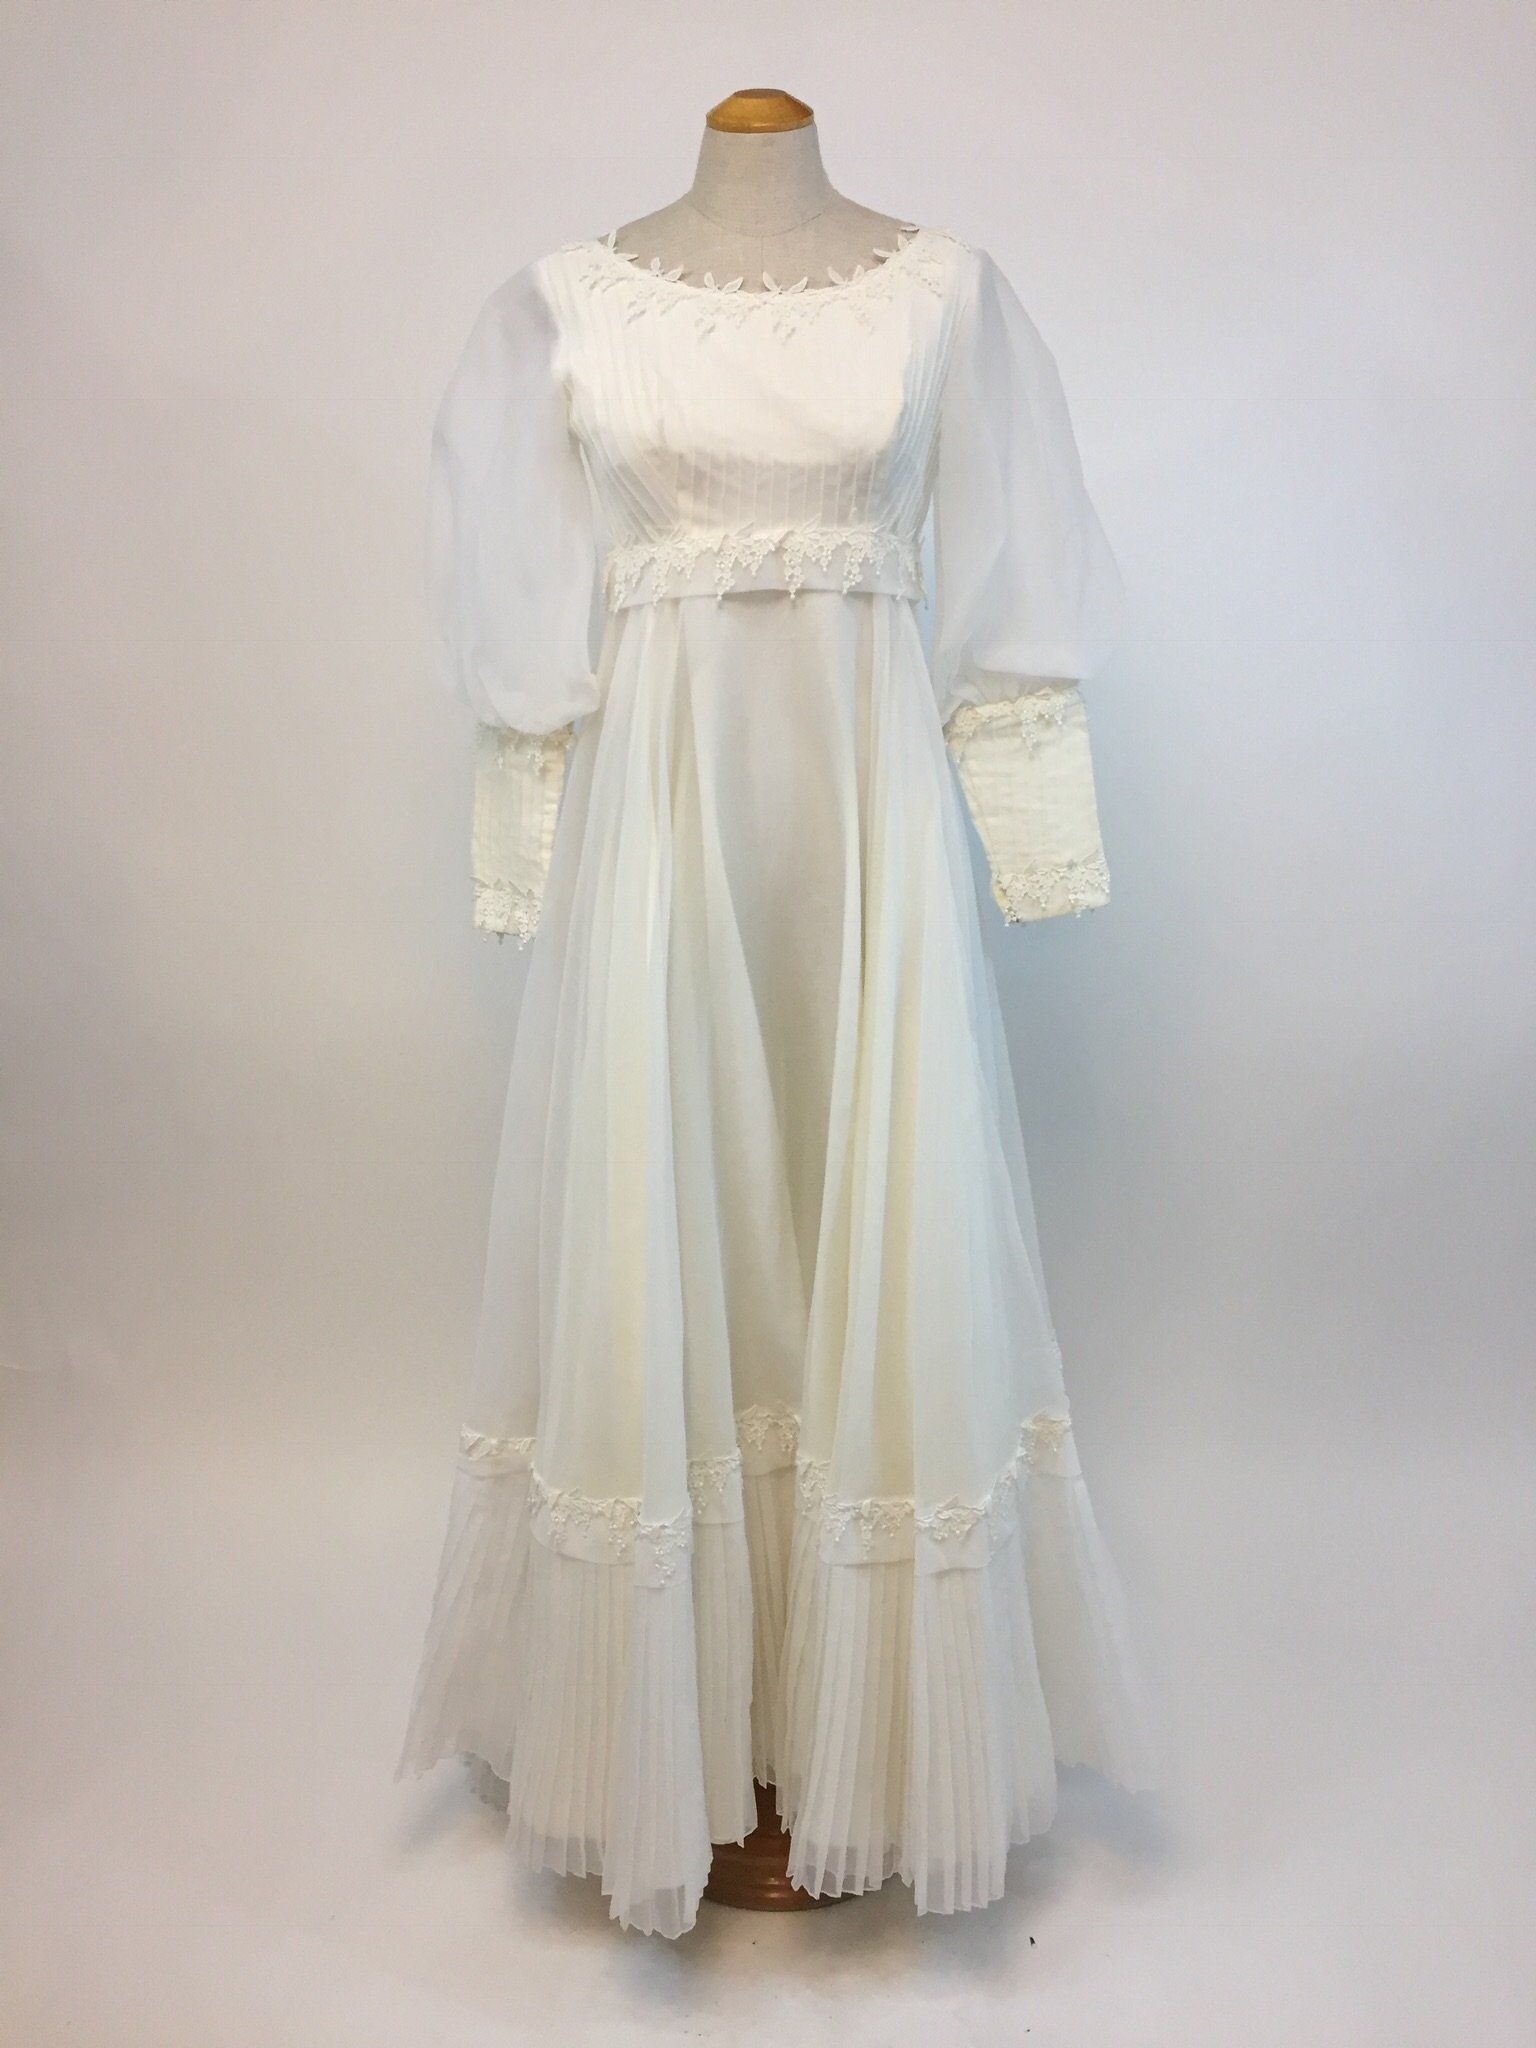 Wisteria us boho wedding dress sample pinterest wisteria